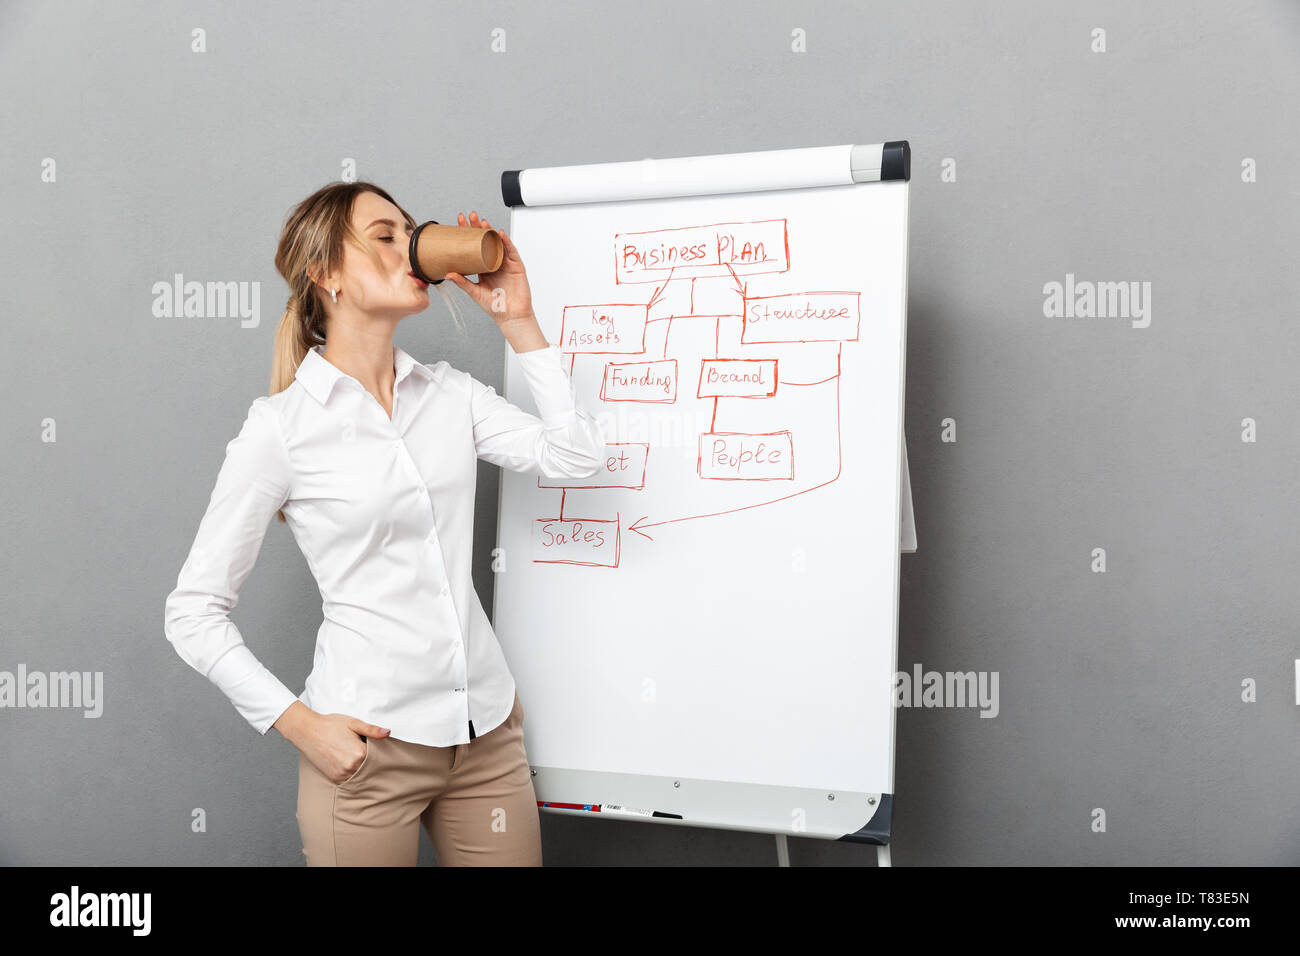 Image of european businesswoman in formal wear drinking coffee while making presentation using flipchart in the office isolated over gray background - Stock Image